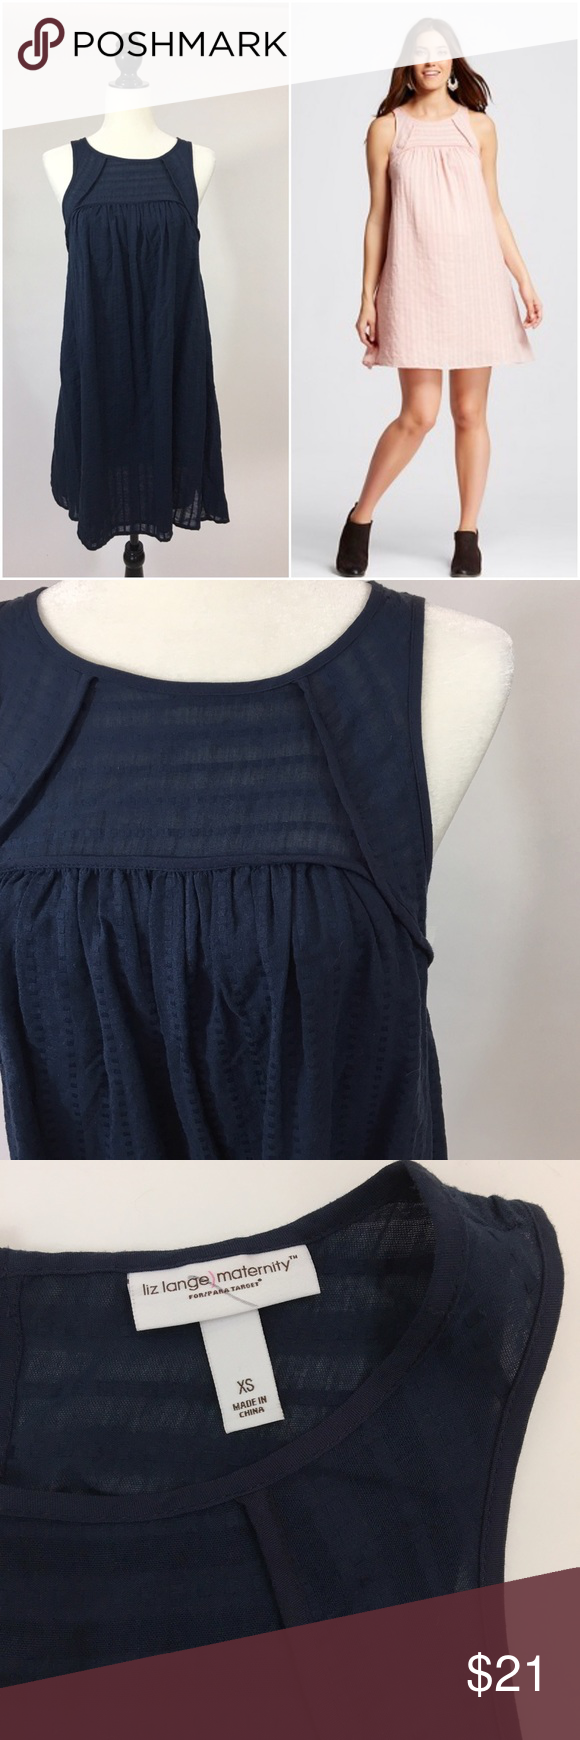 e1755a7a834 LIZ LANGE Navy Maternity Striped Gauze Dress Cute maternity sleeveless gauze  dress that is also lightweight featuring a navy stripe and fully lined!